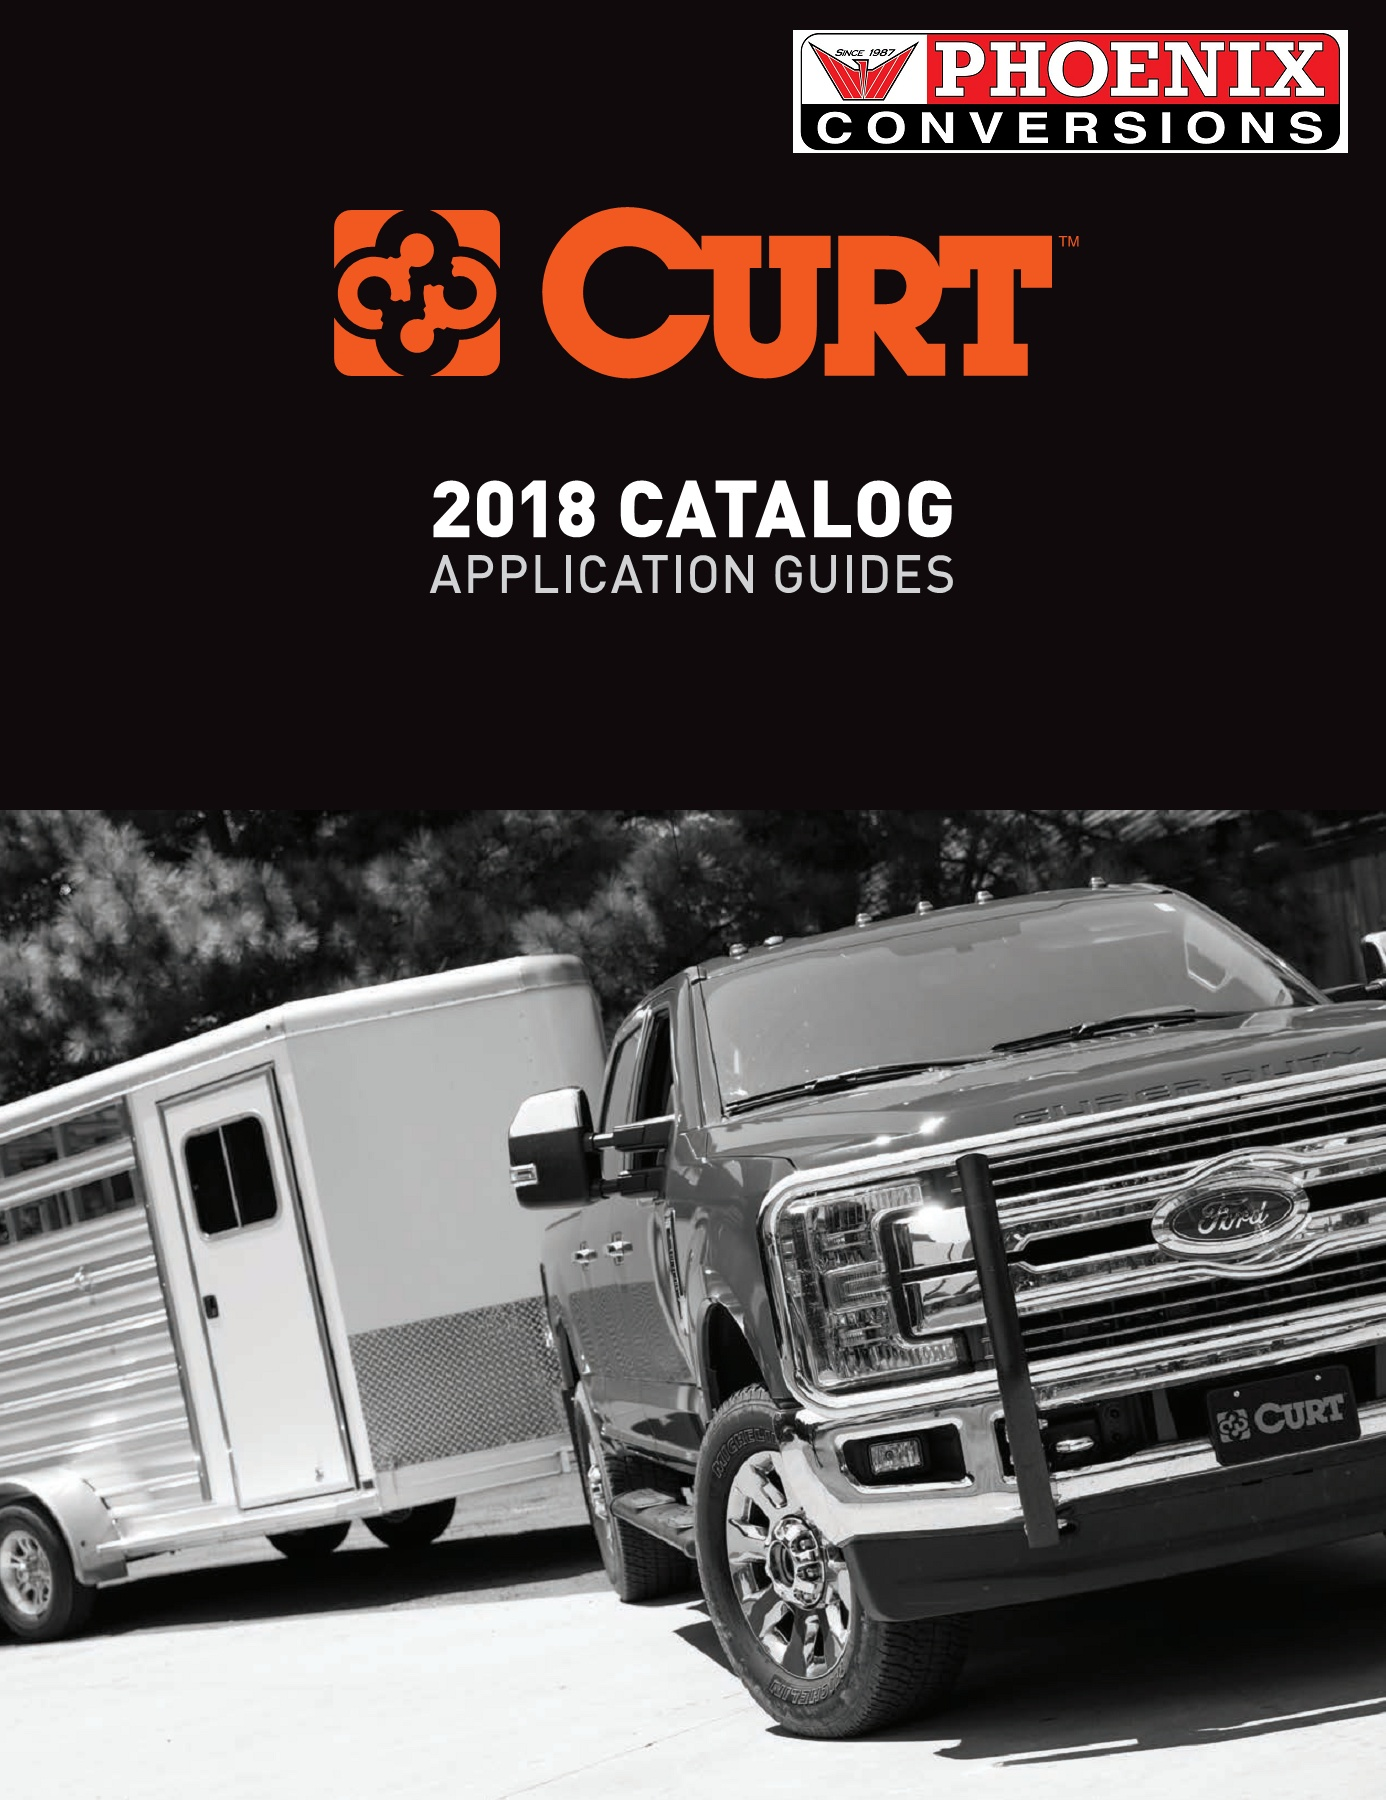 Curt 2018 Catalog With App Guide Pages 351 400 Text Version 2003 Suzuki Aerio Gs Sedan In Electric Yellow Click To See Large